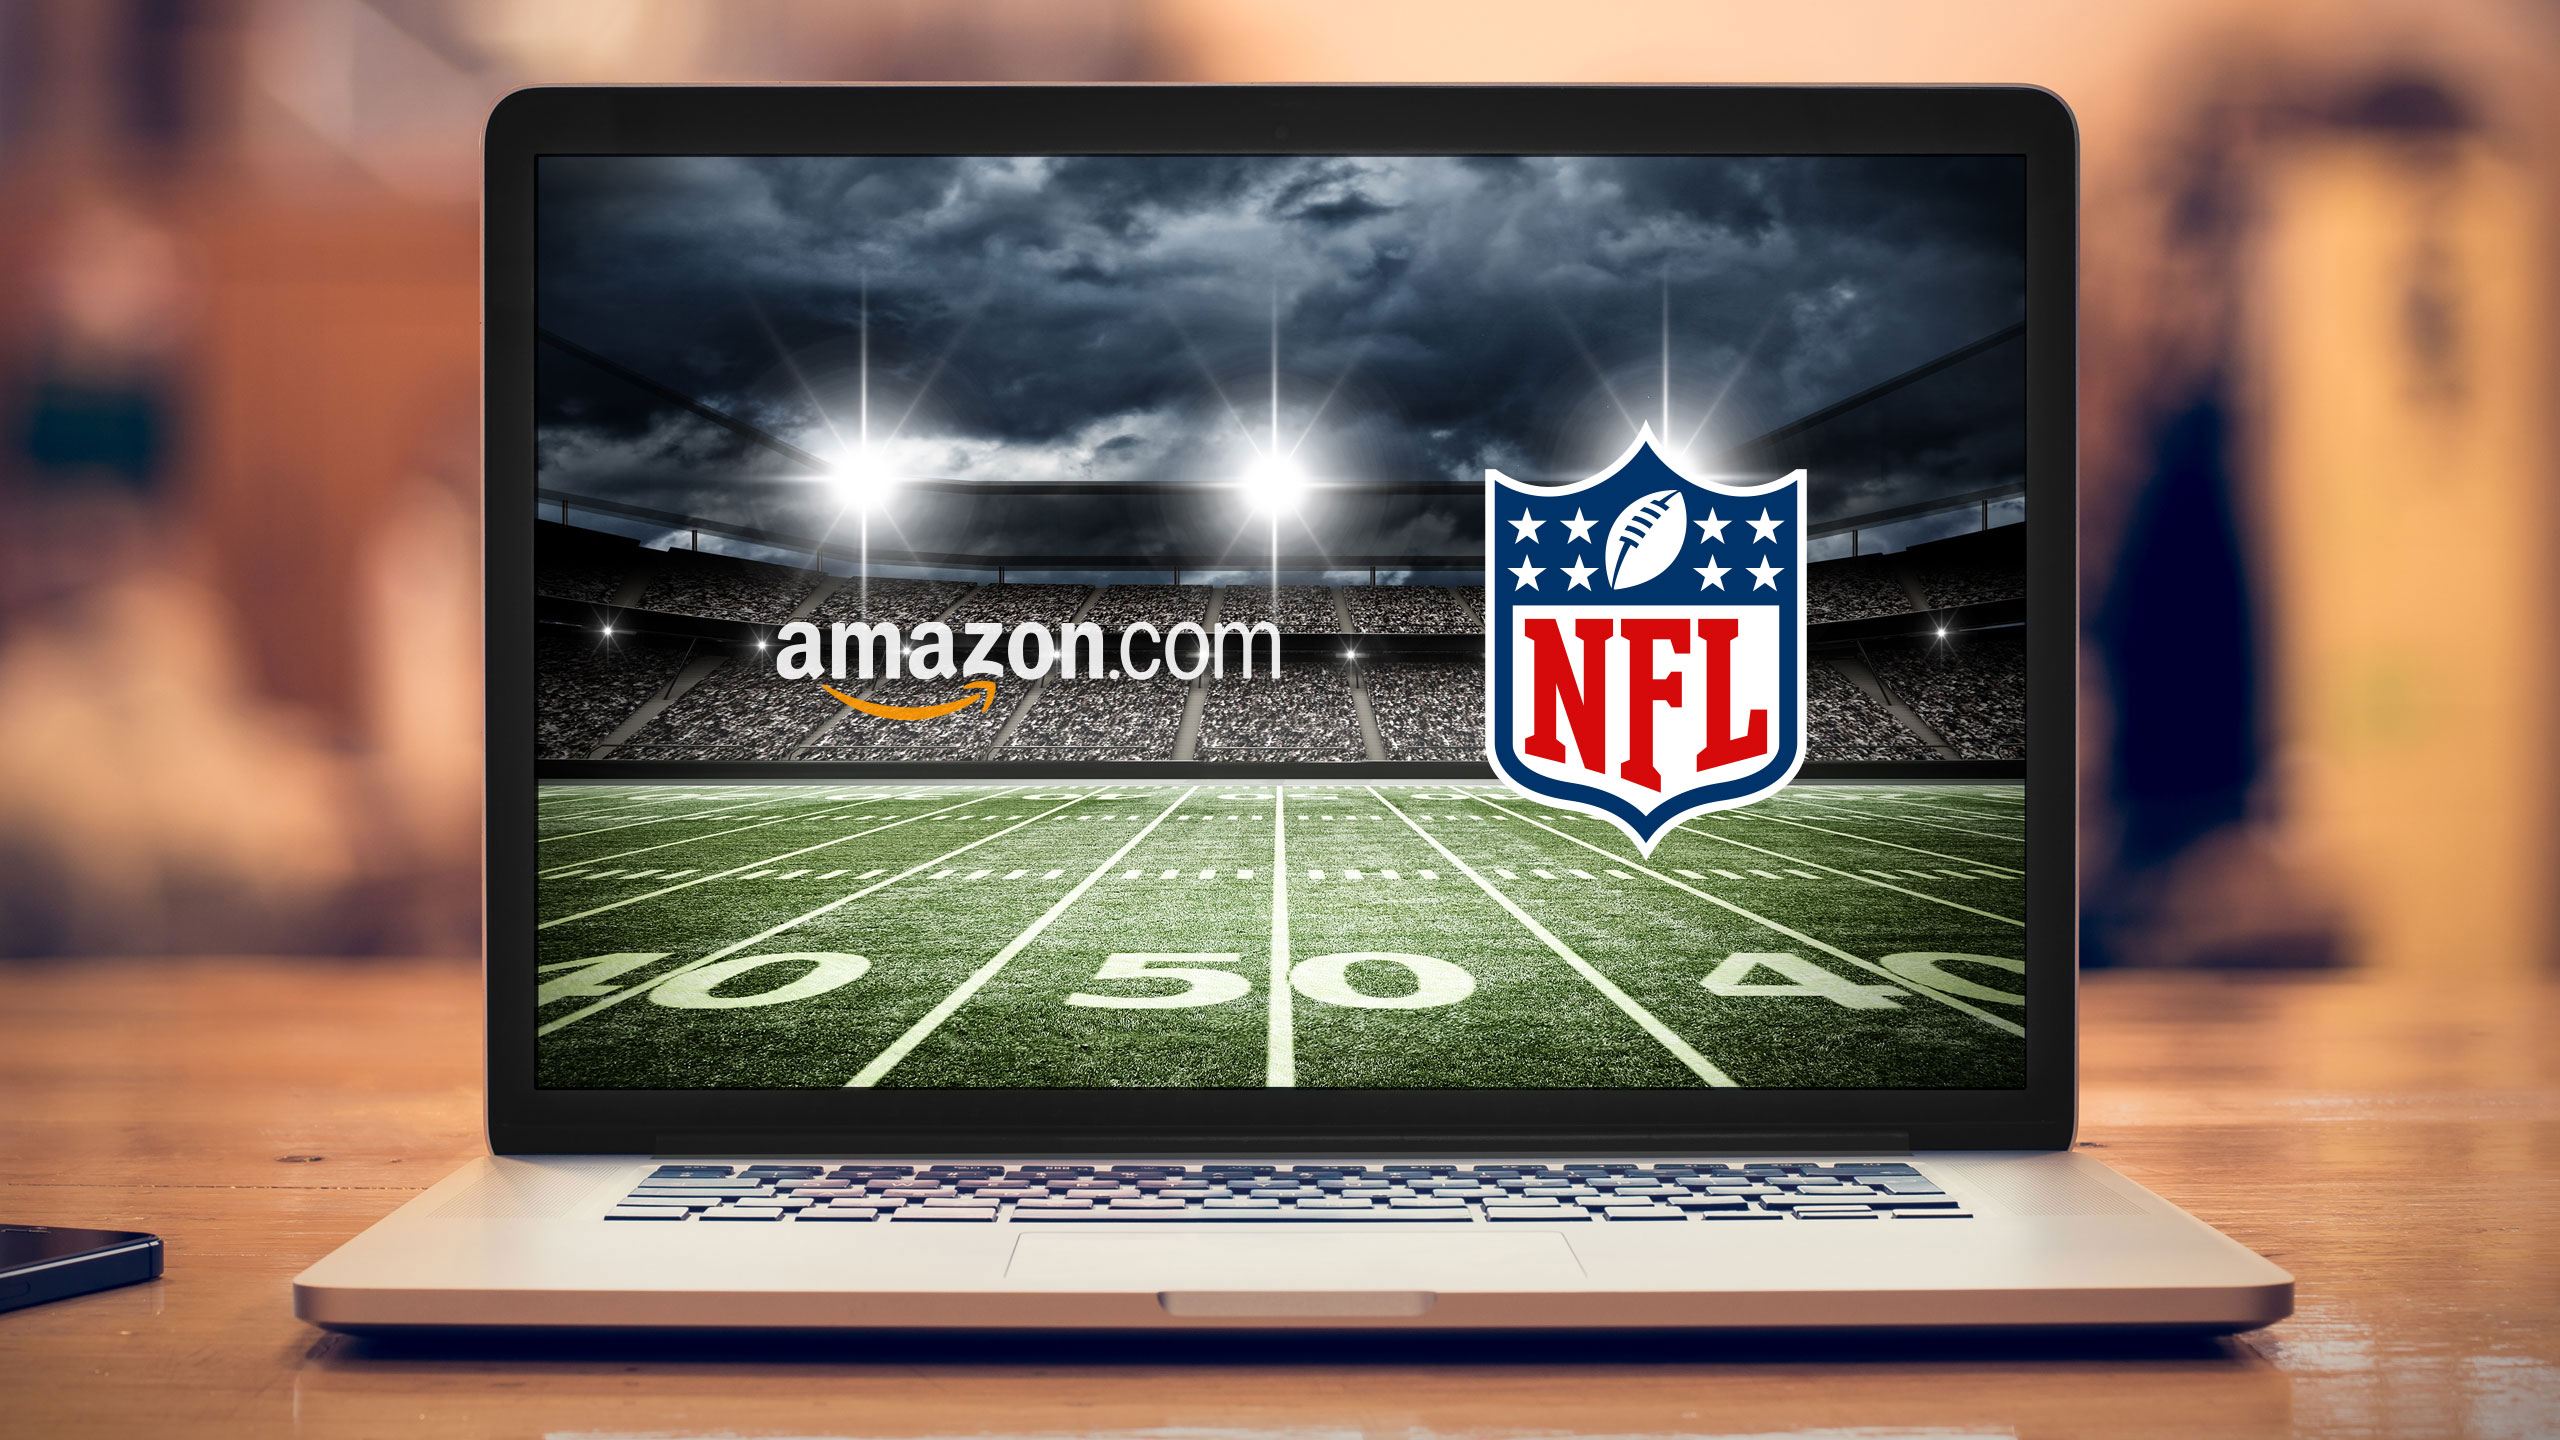 Here's how to watch Thursday Night Football on Amazon